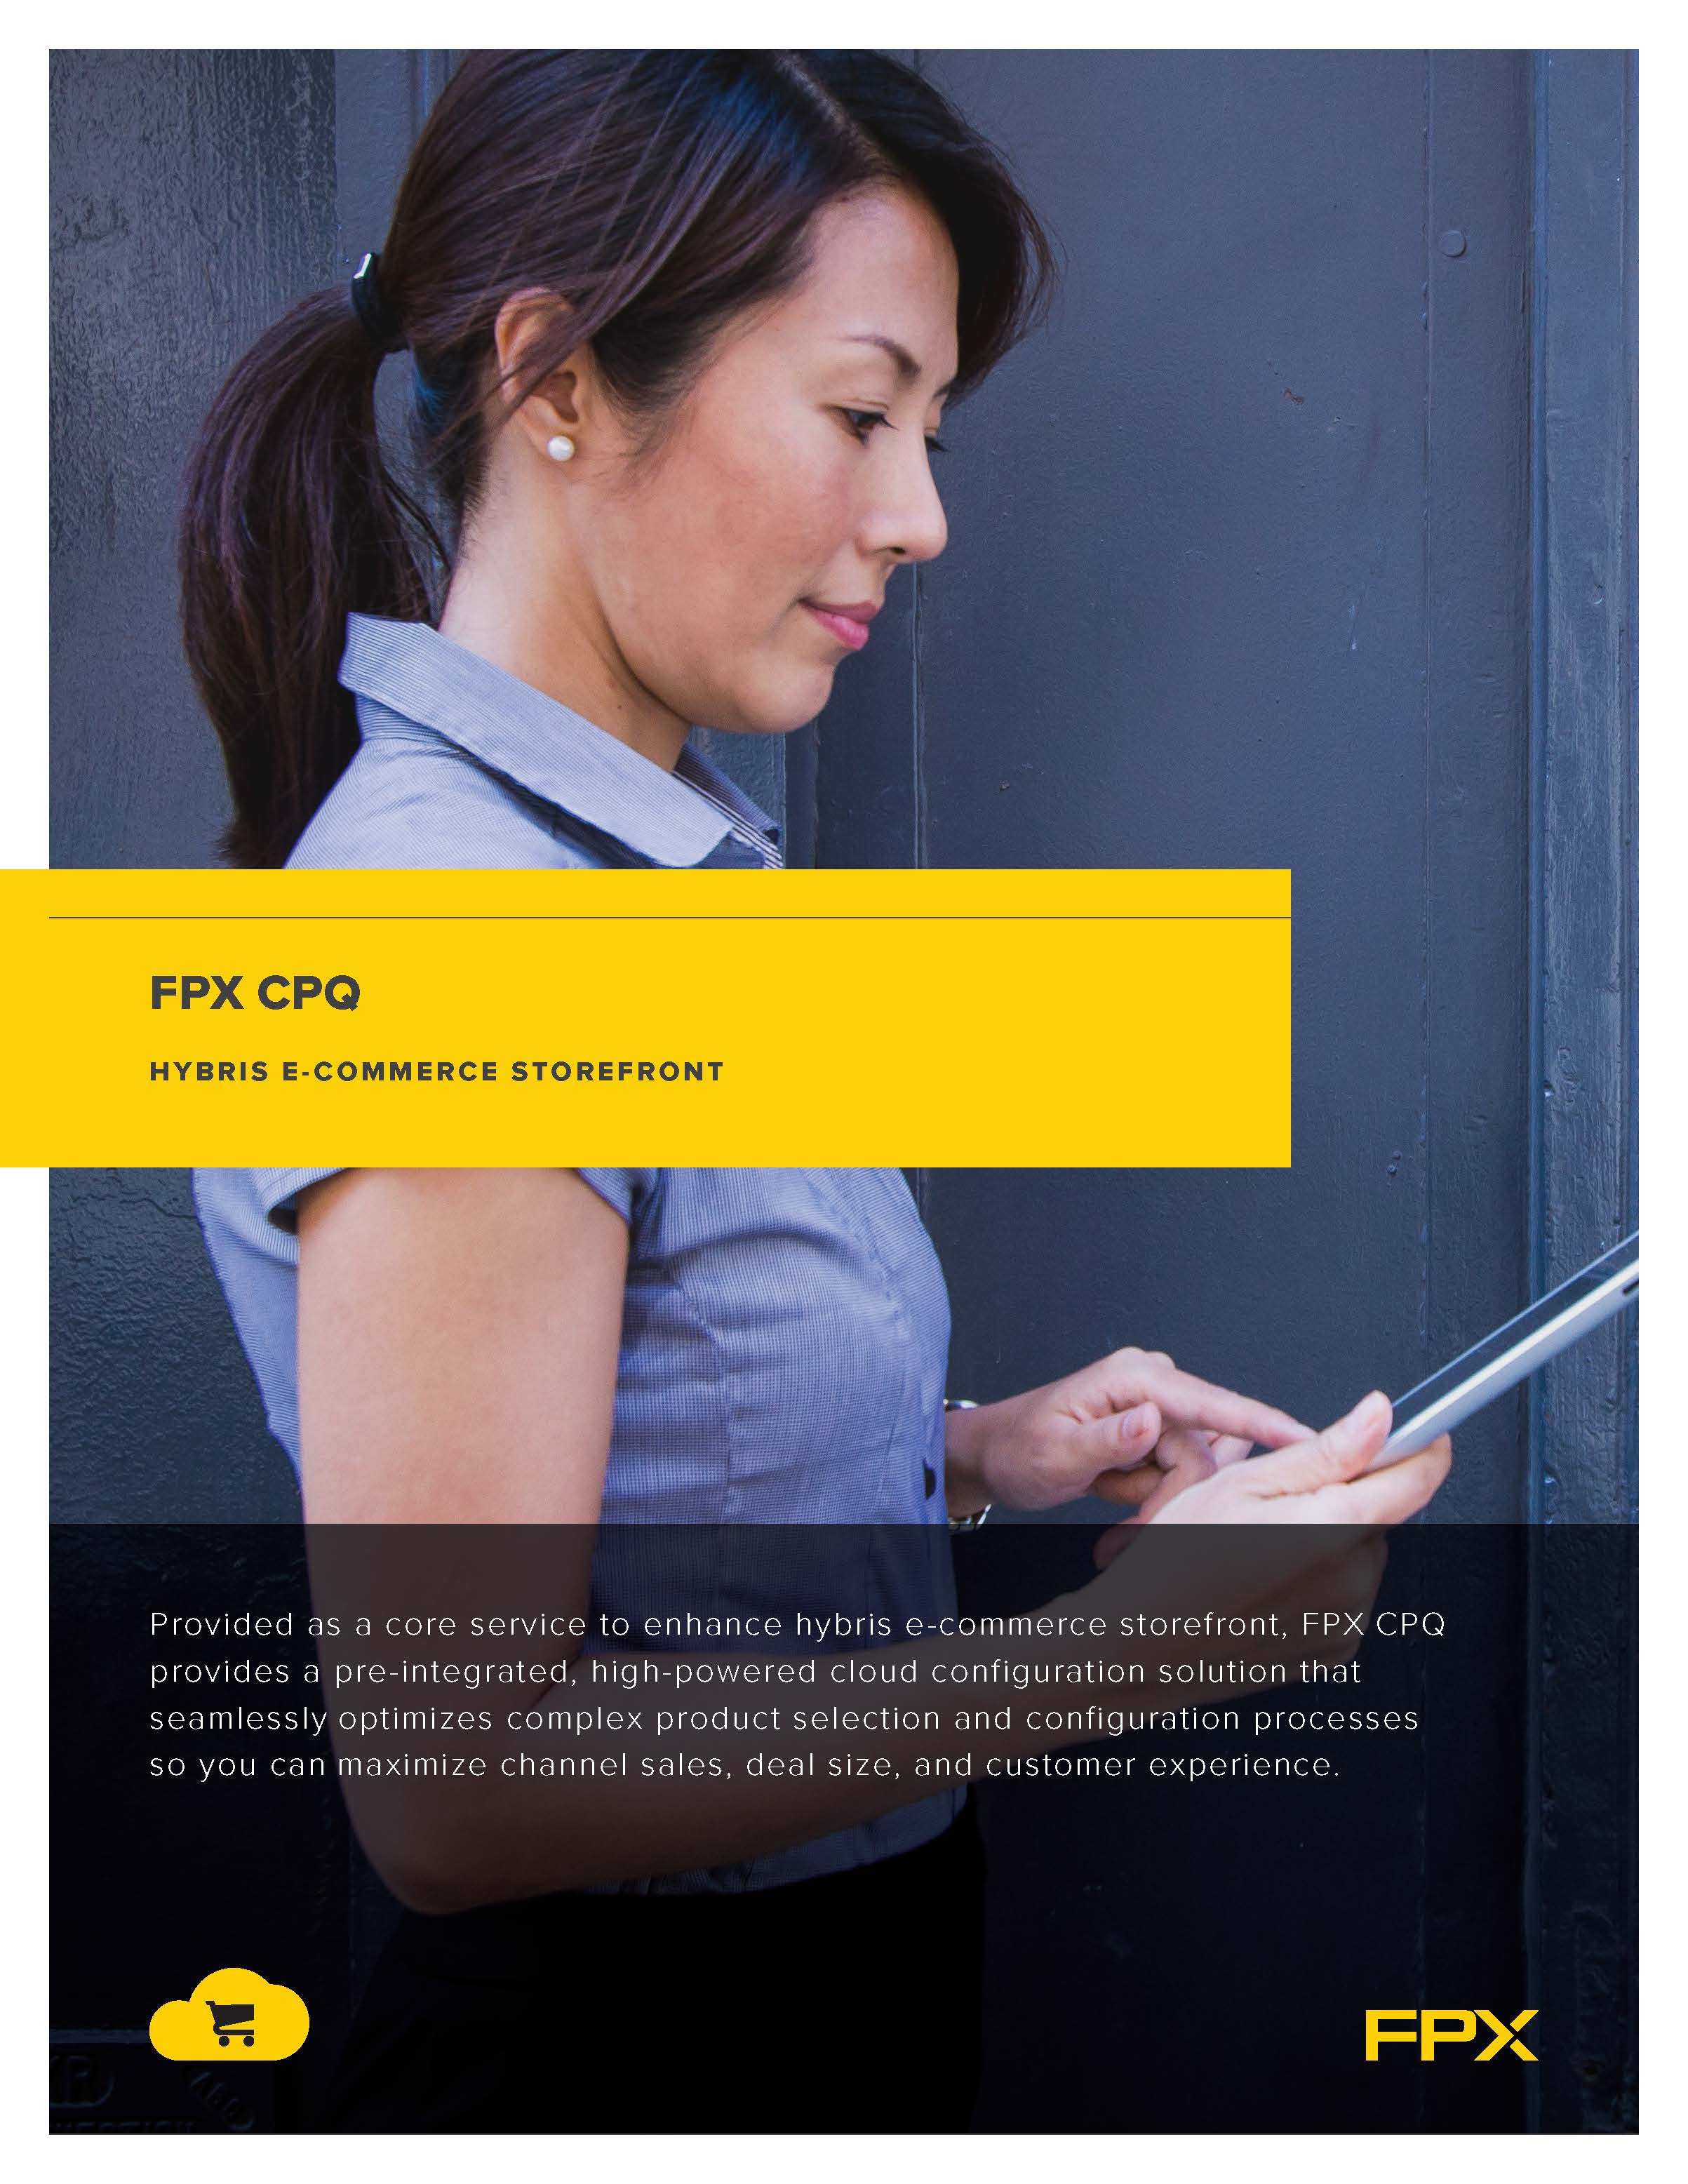 Download the FPX CPQ for SAP Hybris data sheet